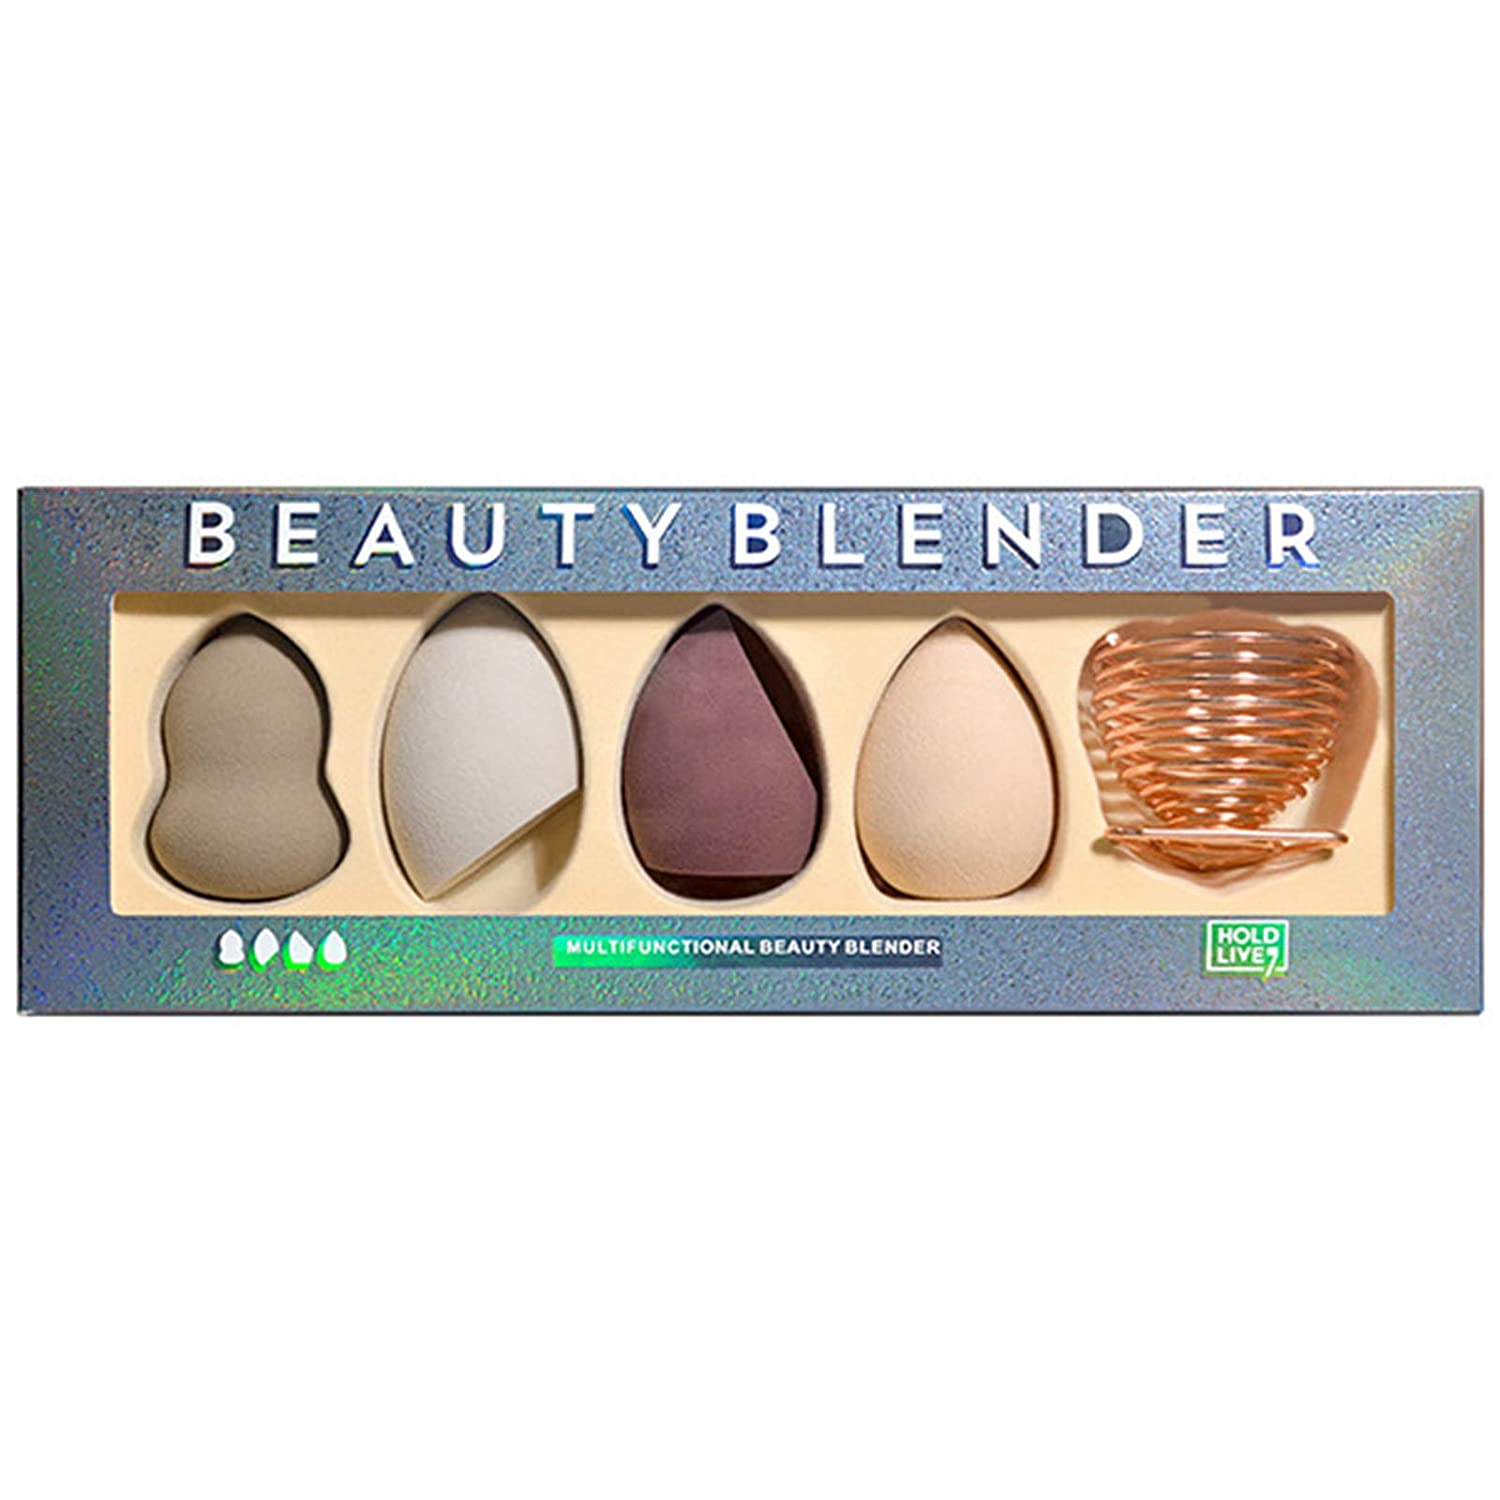 Makeup Sponge Set of 4 Pcs with Storage, Professional Soft Makeup Blender Latex Free Dry & Wet Use For Liquid Cream and Powder Multi-colored Makeup Sponges